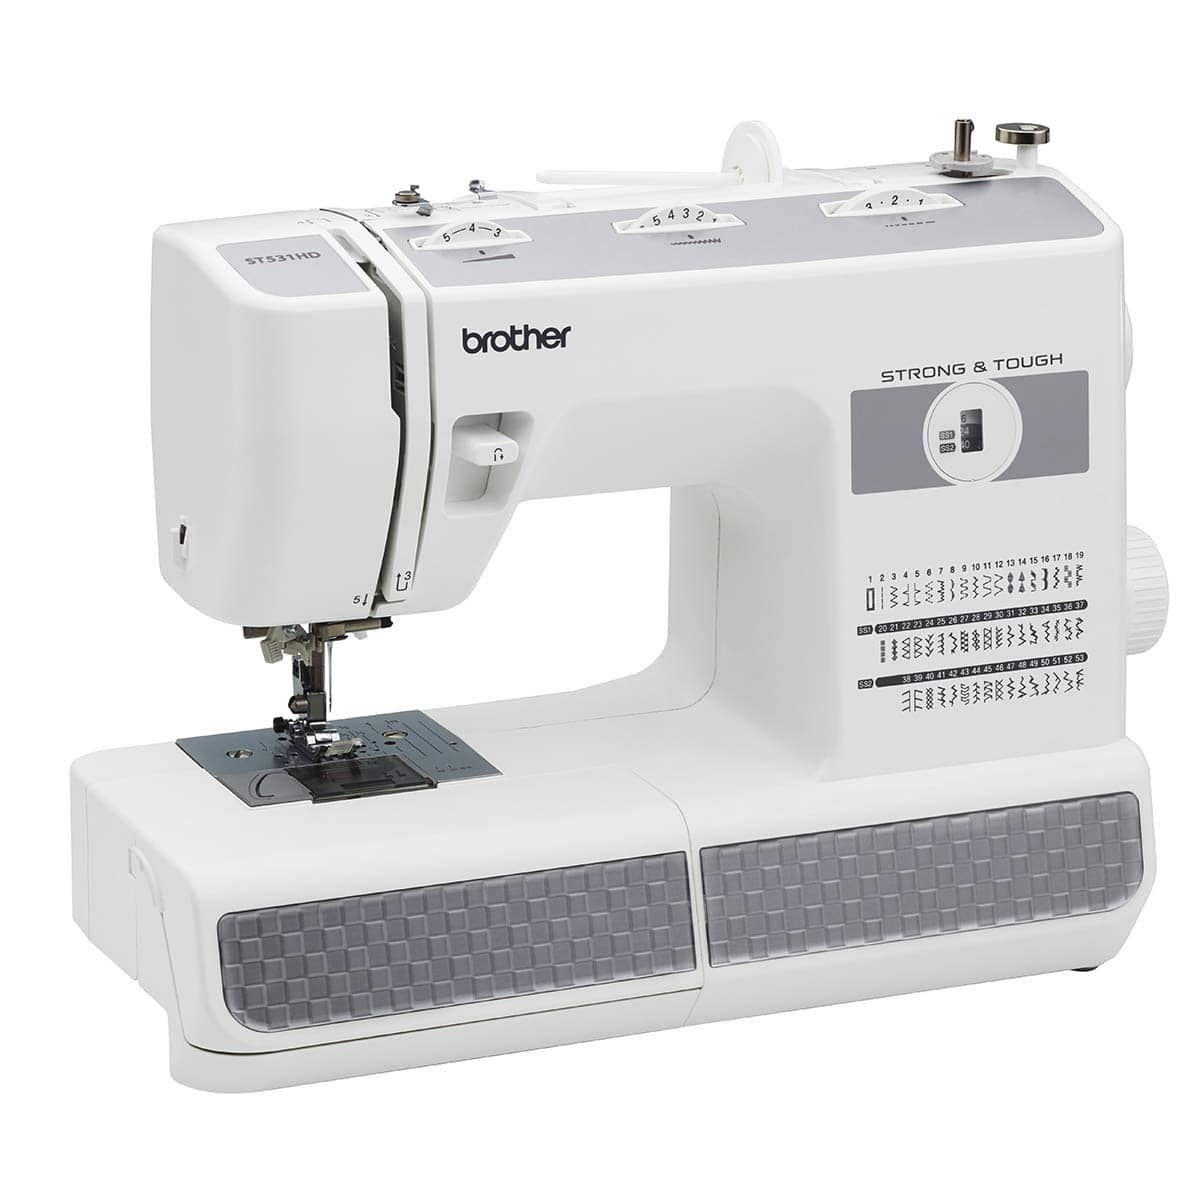 Brother RST531HD (Refurbished) Strong and Tough, Heavy Duty 53 Stitch Sewing Machine $128